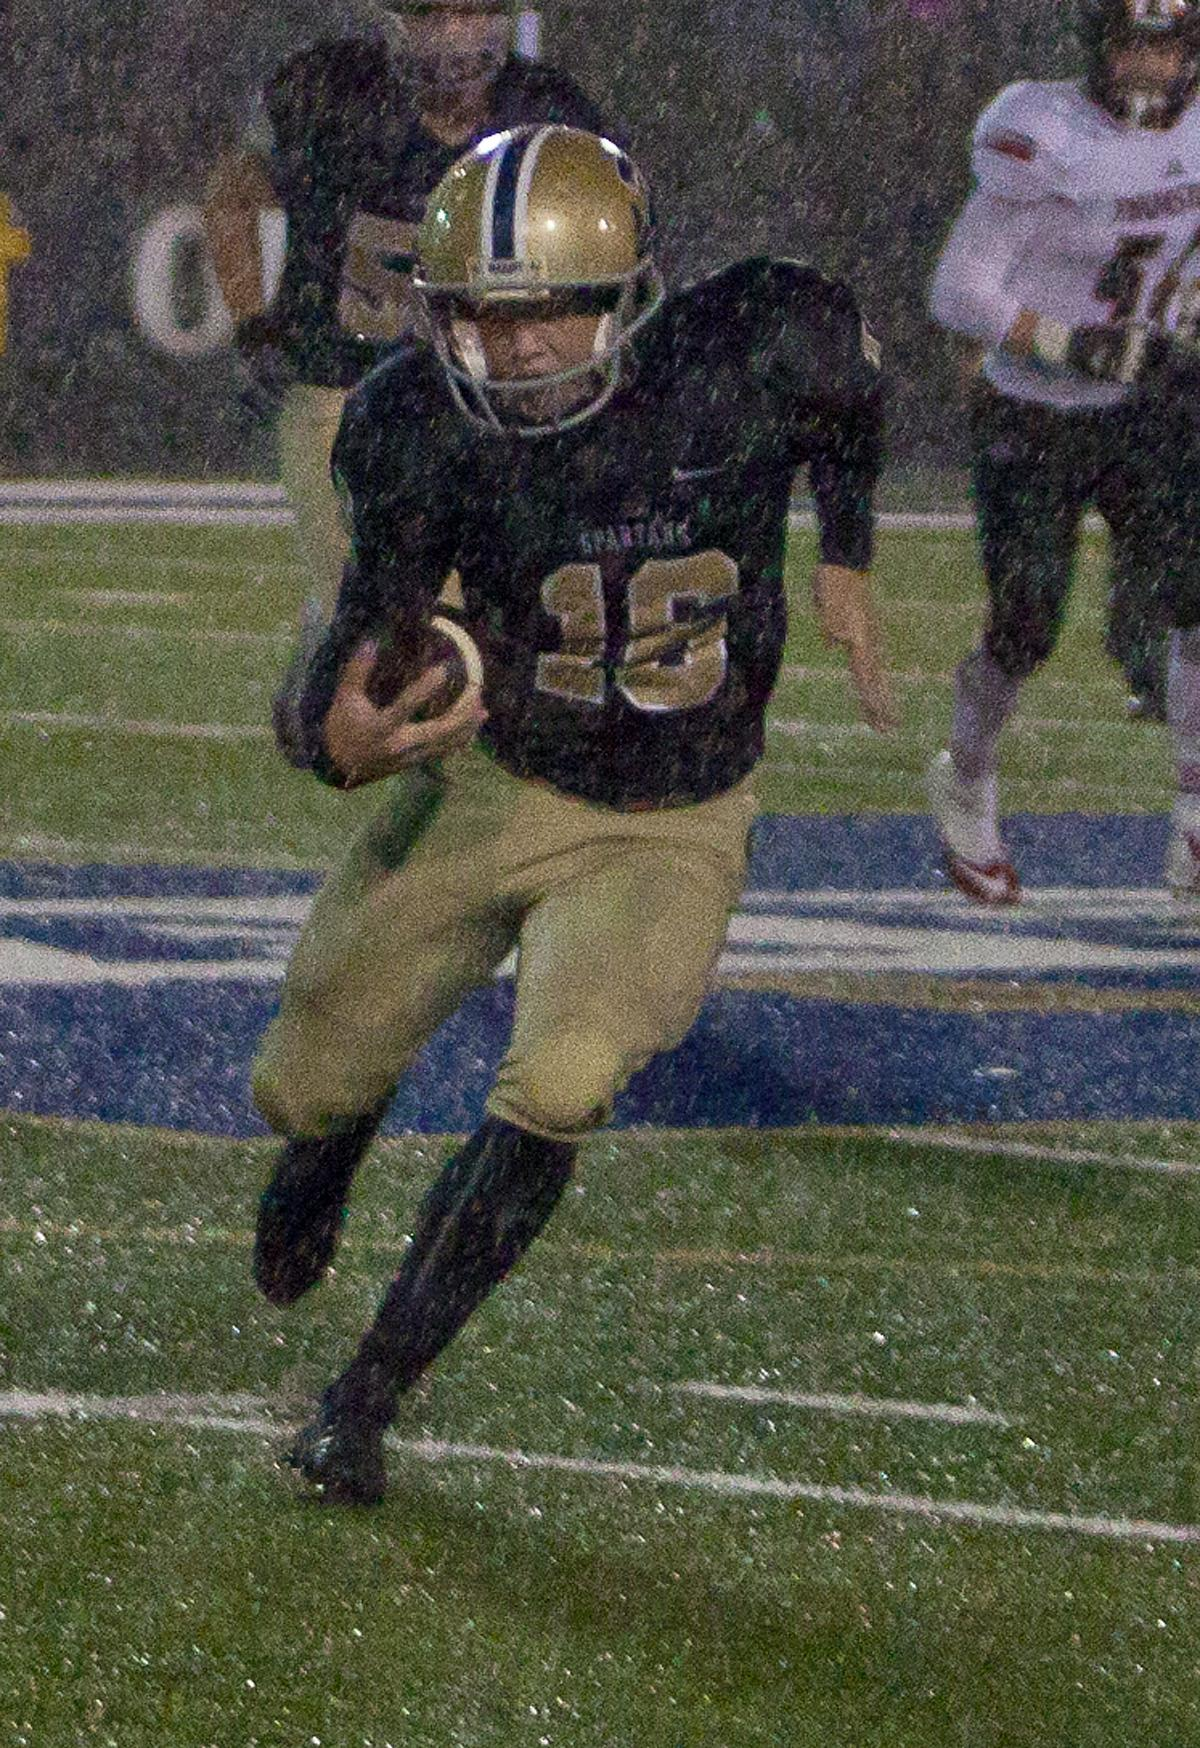 Marist running back Riley Betts (#16) charges through the rain toward the end zone. The Marist Spartans defeated the Thurston Colts 17 to 14. Photo by Ben Lonergan, Oregon News Lab